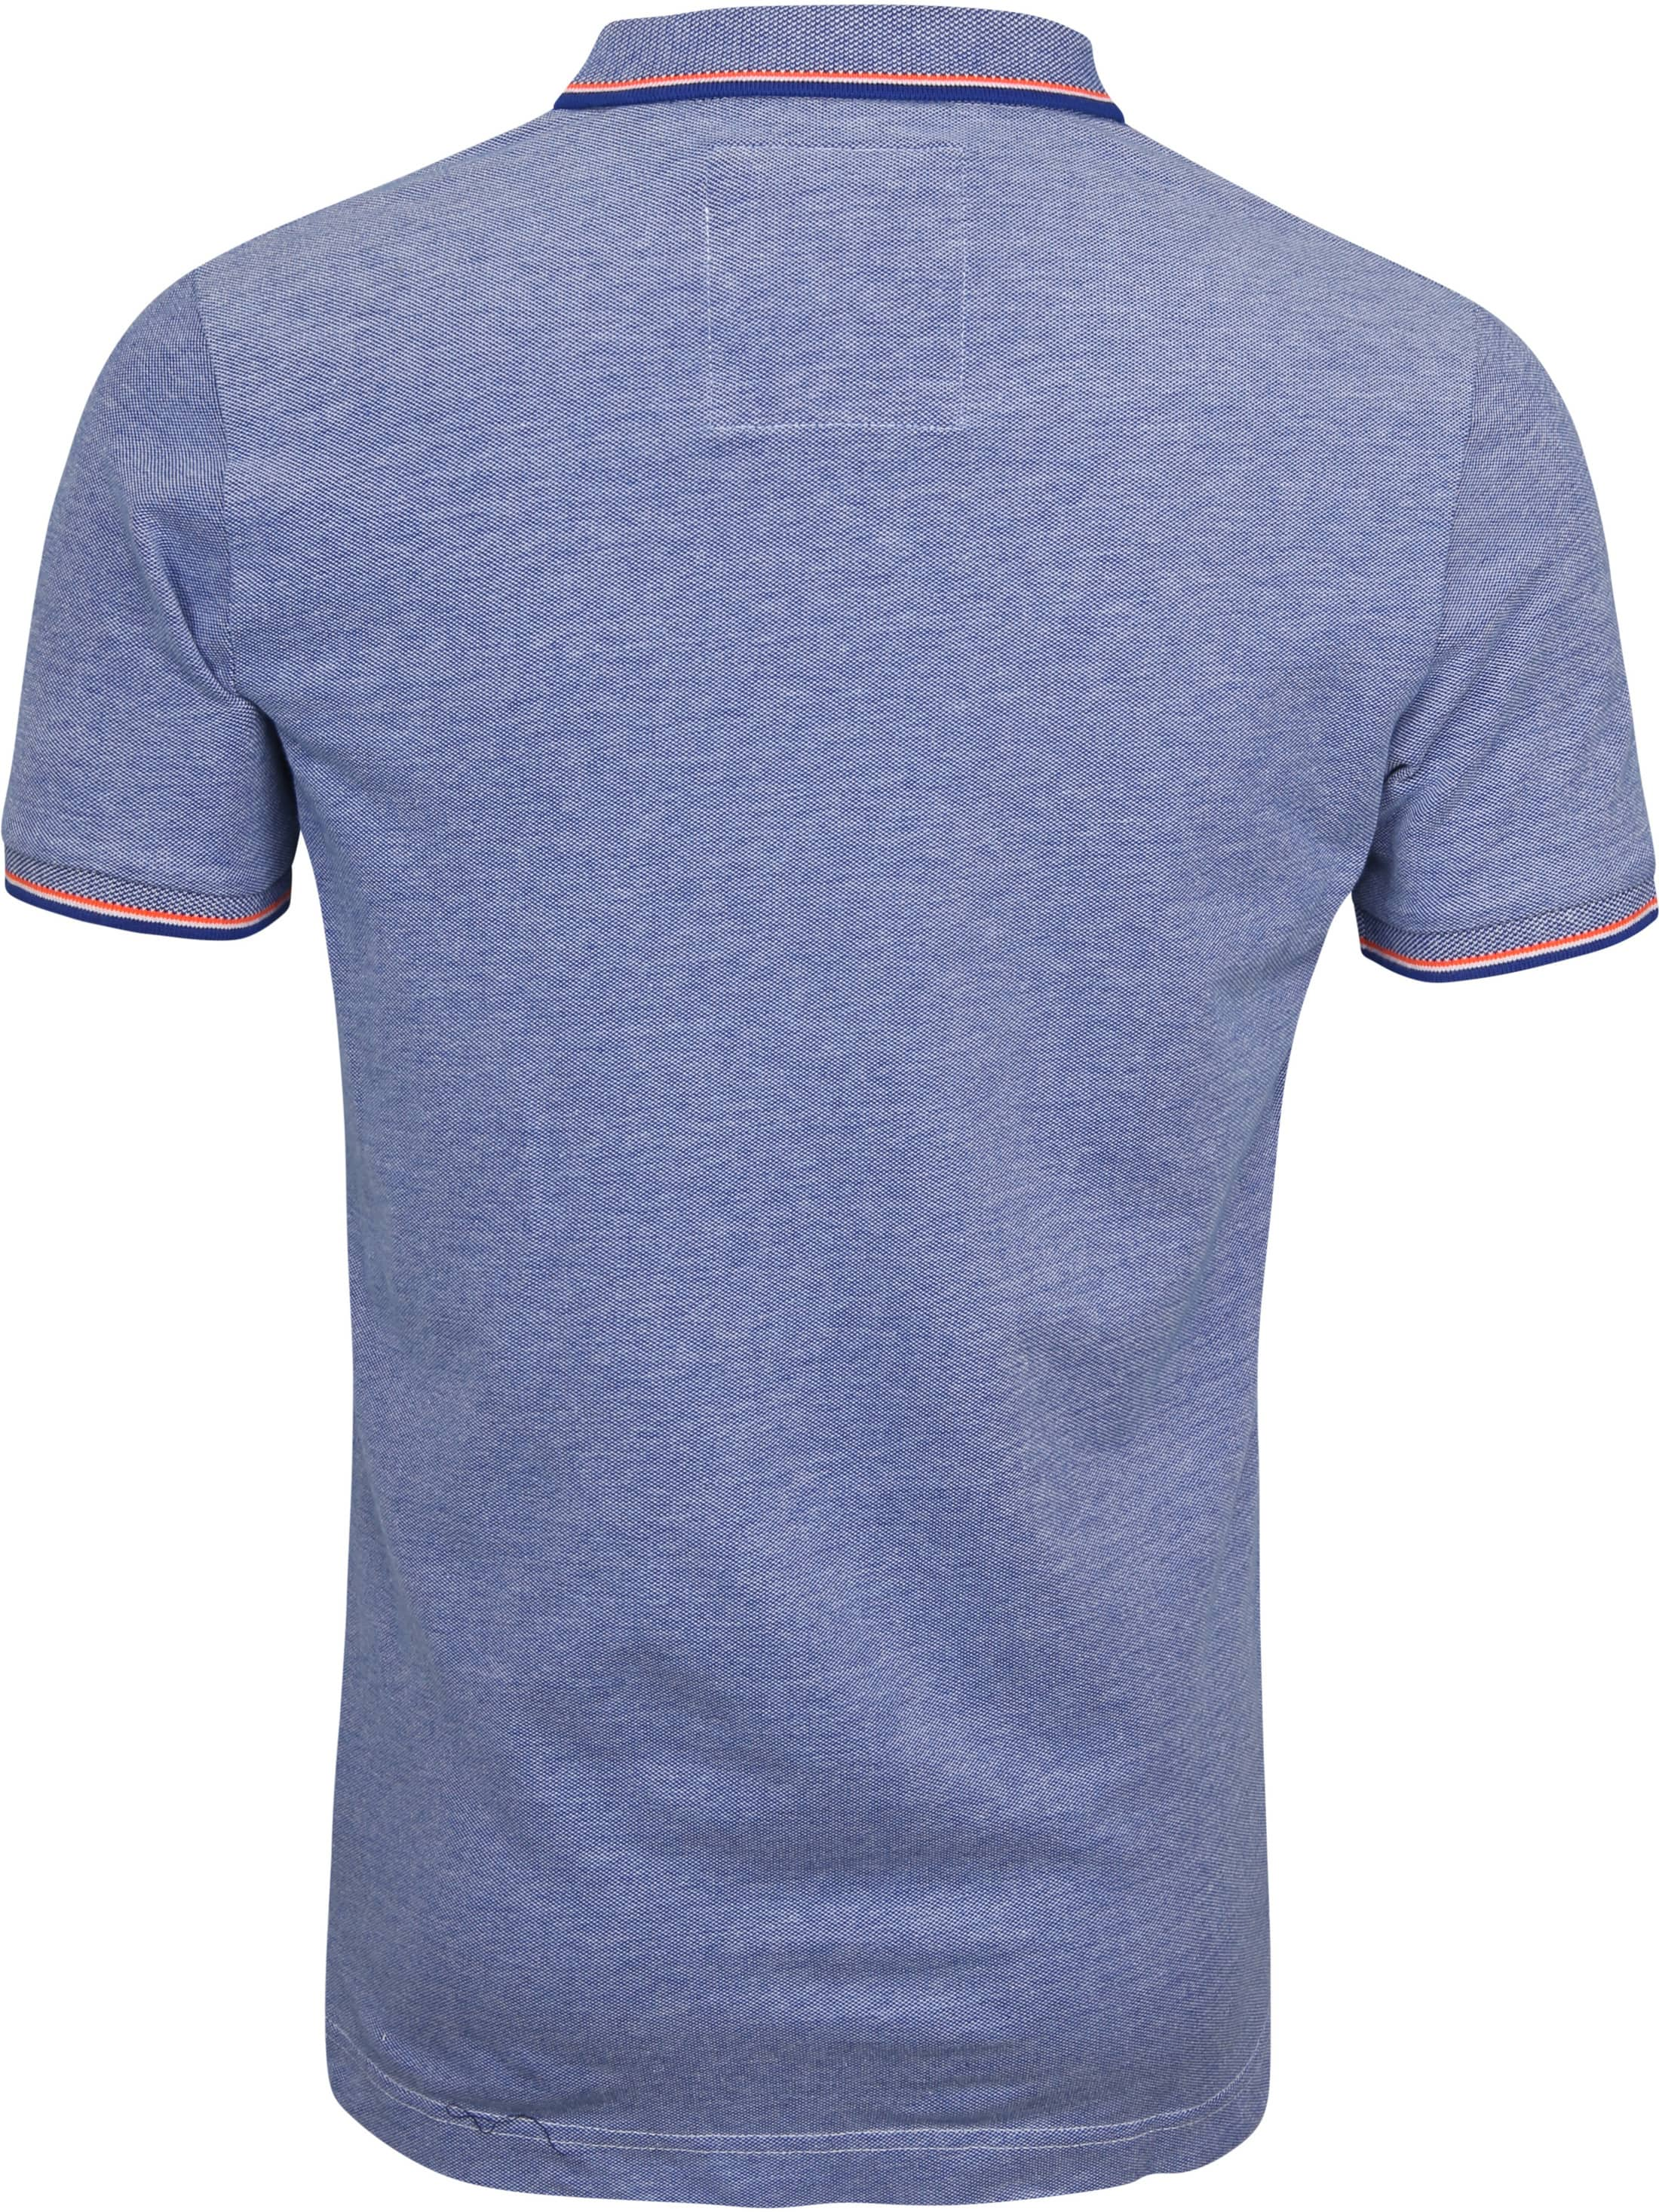 Superdry Premium Polo Blue foto 4